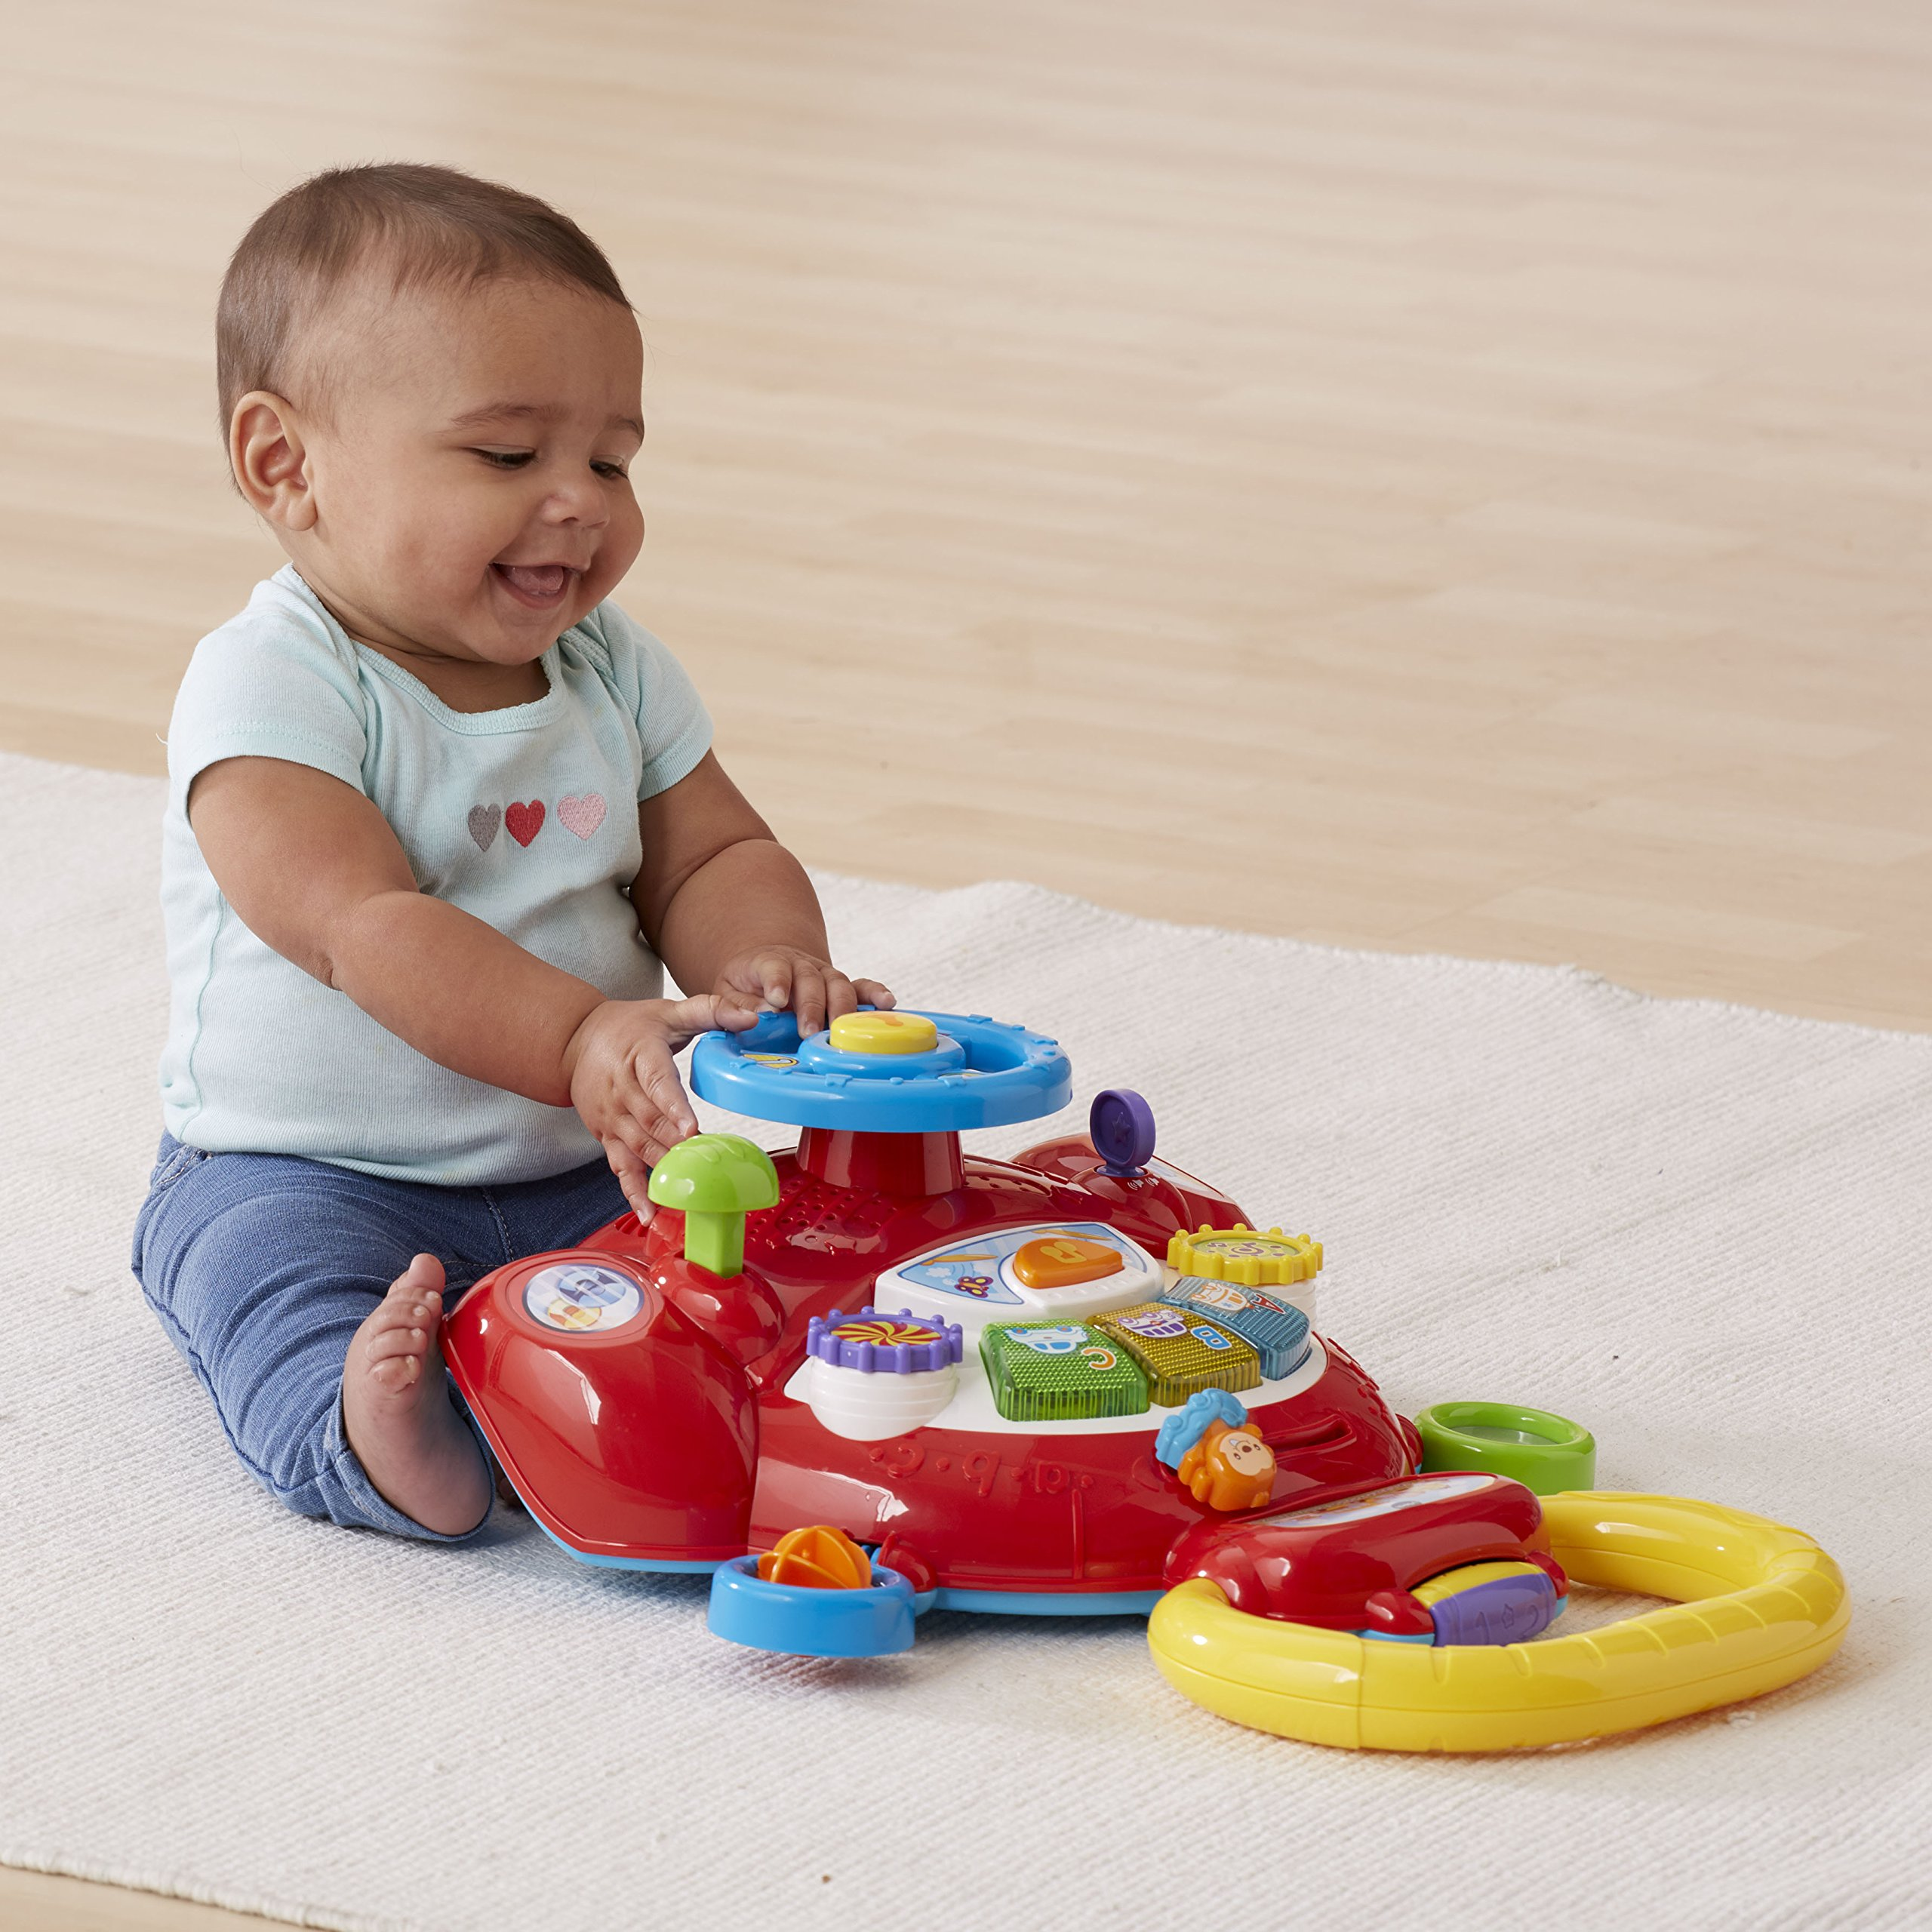 VTech Sit, Stand and Ride Baby Walker (Frustration Free Packaging) (Amazon Exclusive) by VTech (Image #14)